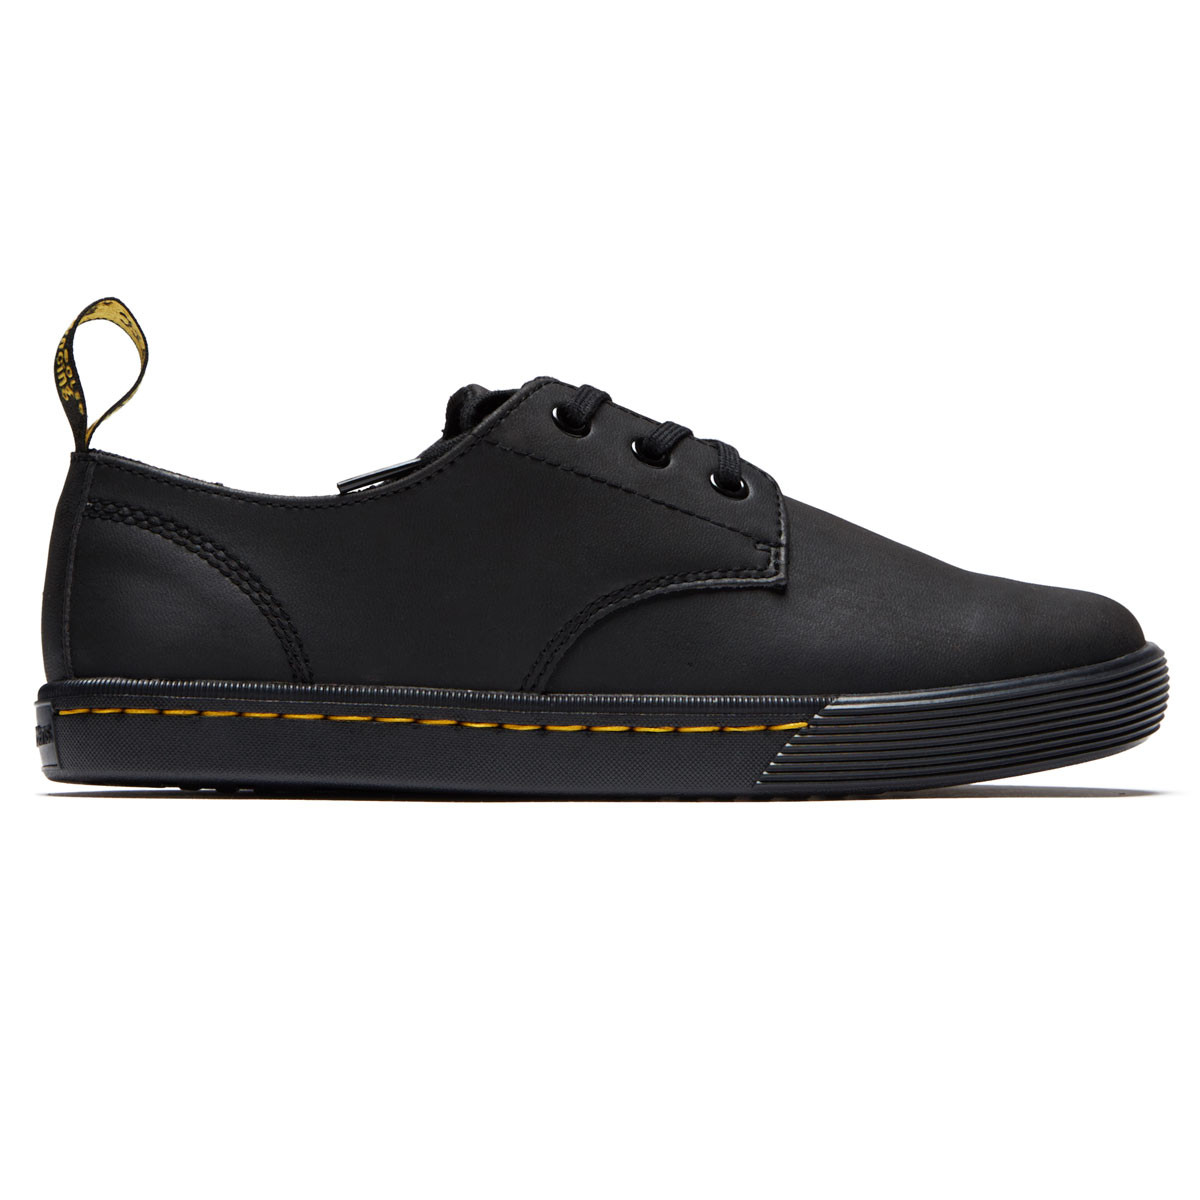 a7948788f5a Dr. Martens Womens Santanita Shoes - Black - 6.0